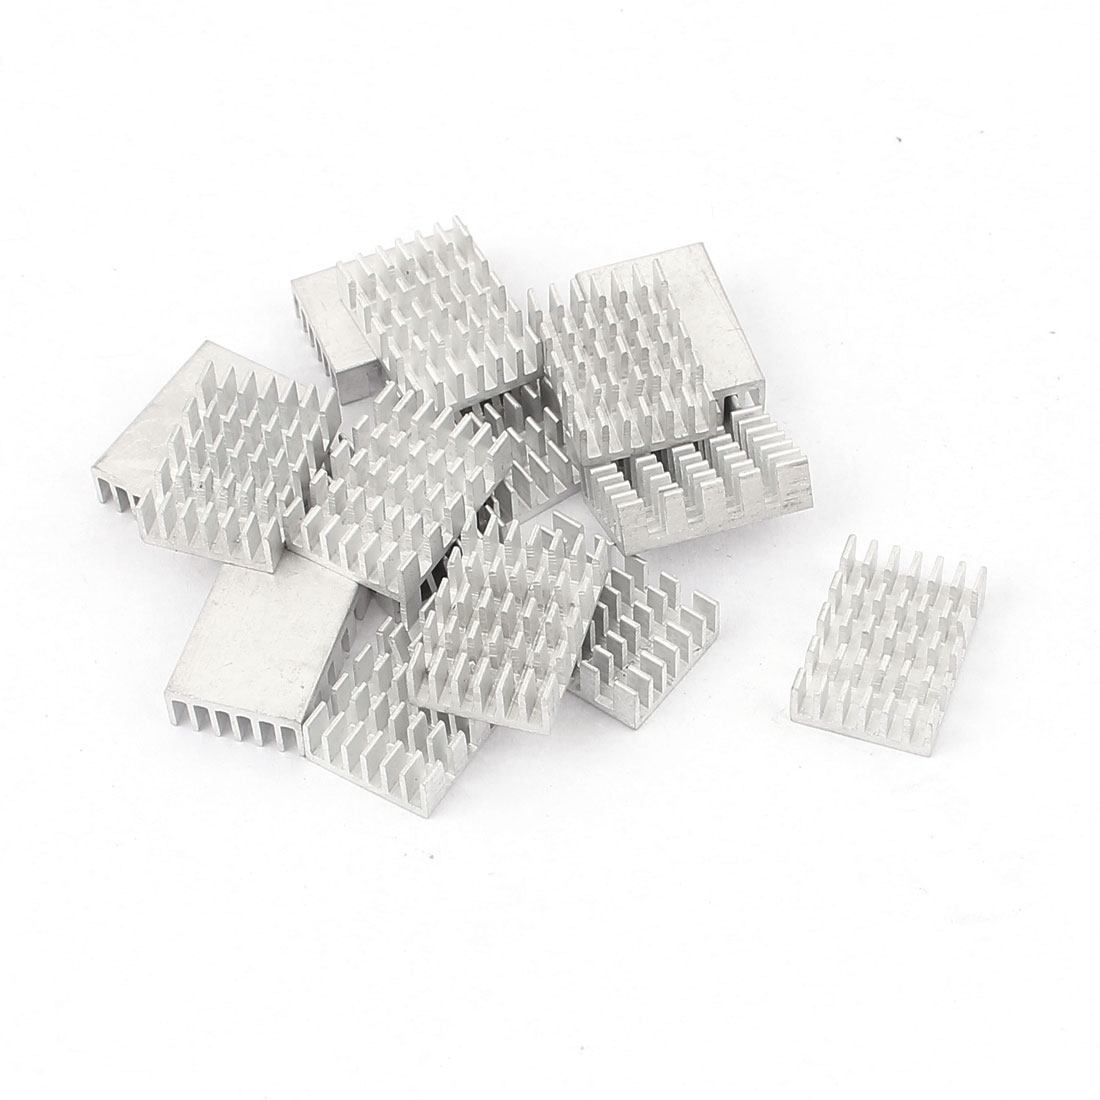 20mm x 14mm x 6mm LED Light Cooling Power Transistor Heatsink Cooler Silver Tone 16Pcs